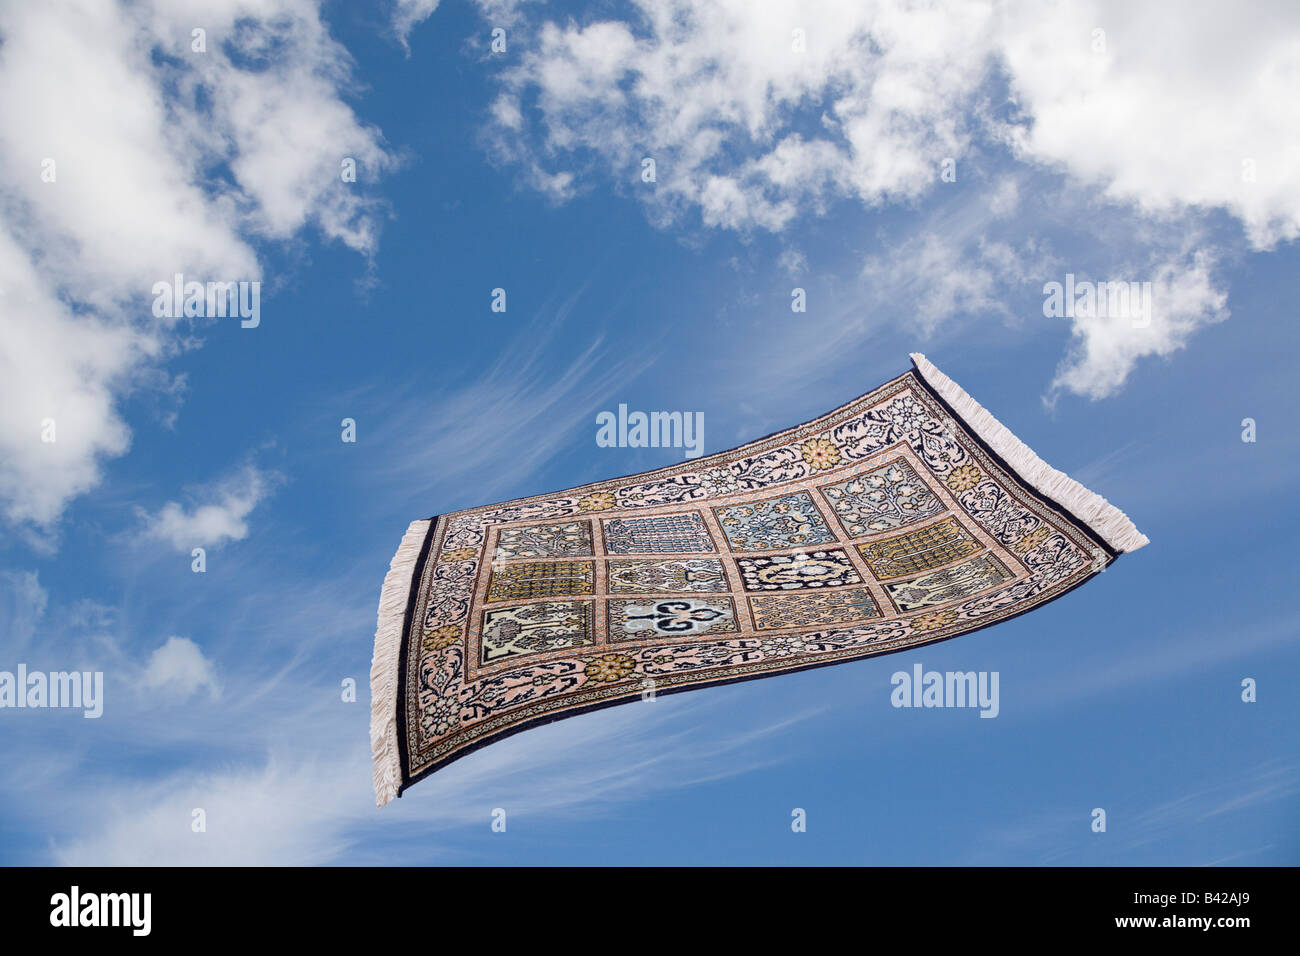 Magic carpet flying across blue sky with white clouds Stock Photo     Magic carpet flying across blue sky with white clouds